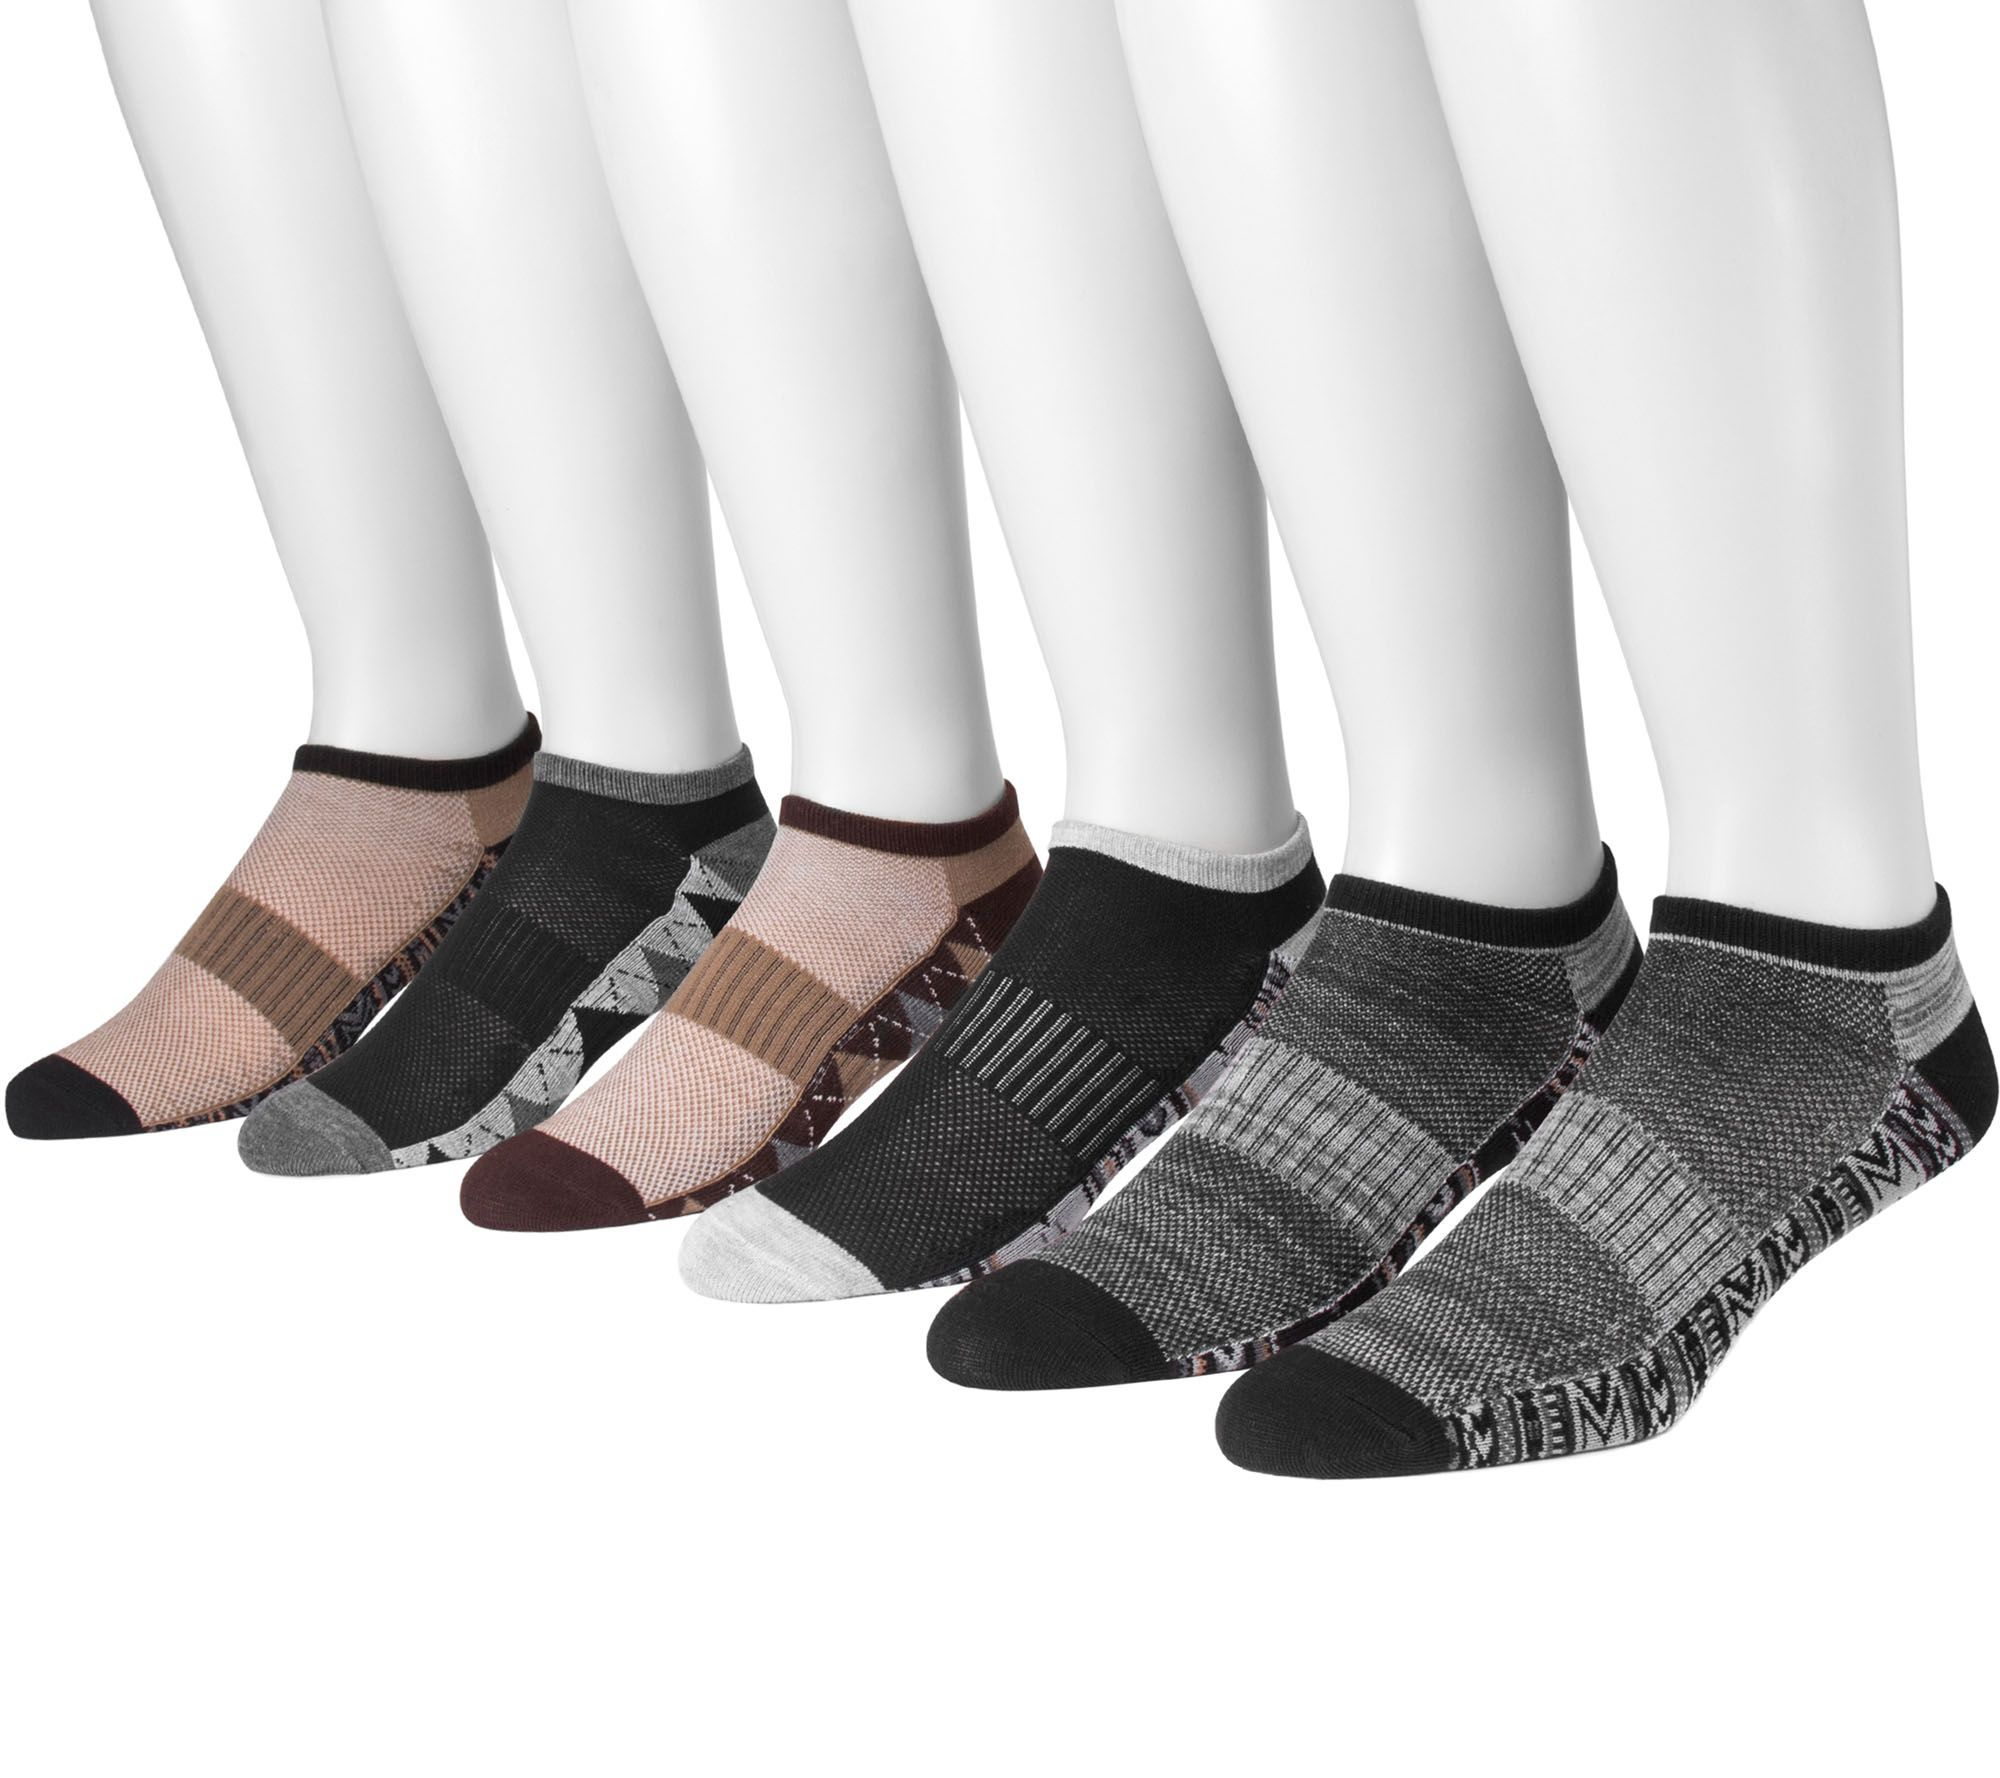 From the treadmill to the track, these arch compression socks are snug enough for athletic activities, while their mesh upper lets them breathe. QVC.com